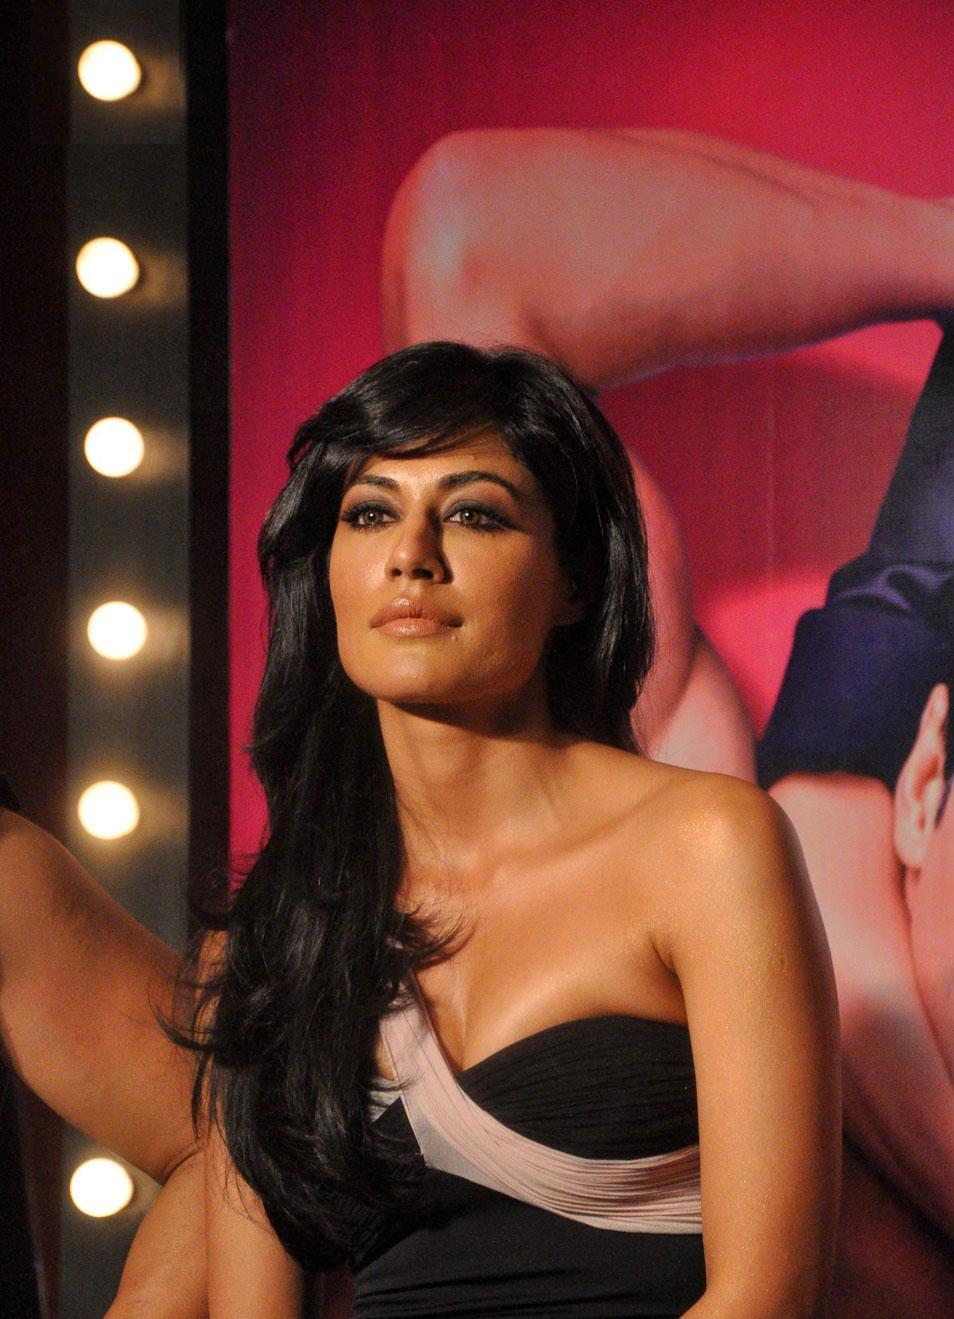 Joker Hd Wallpapers With Quotes Chitrangada Singh Hd Wallpapers High Definition Free